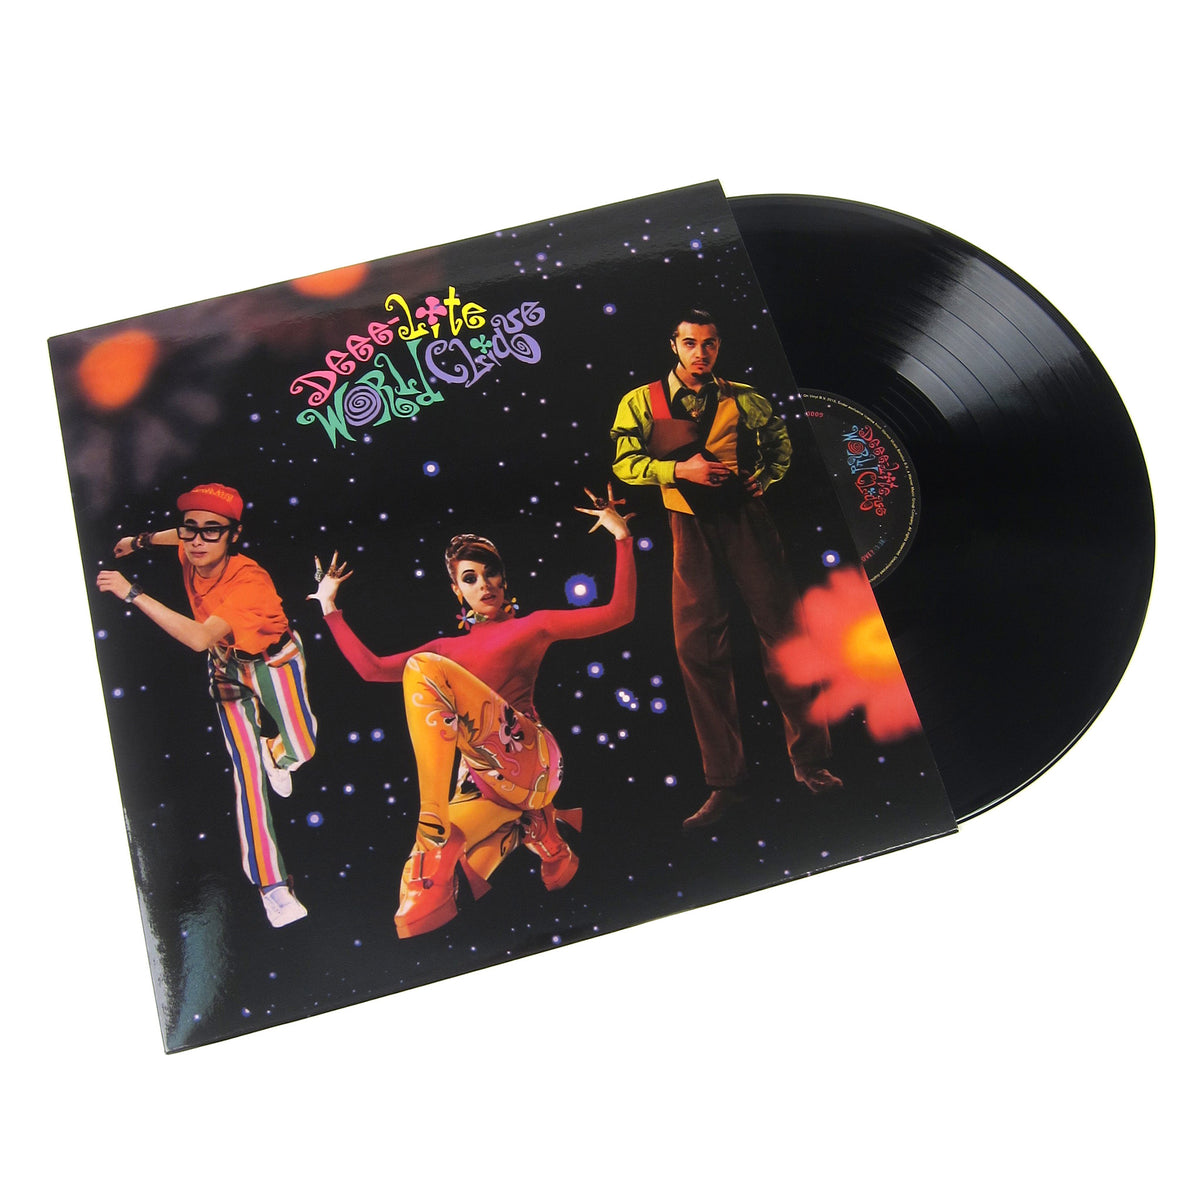 Deee-Lite: World Clique (Music On Vinyl 180g) Vinyl LP